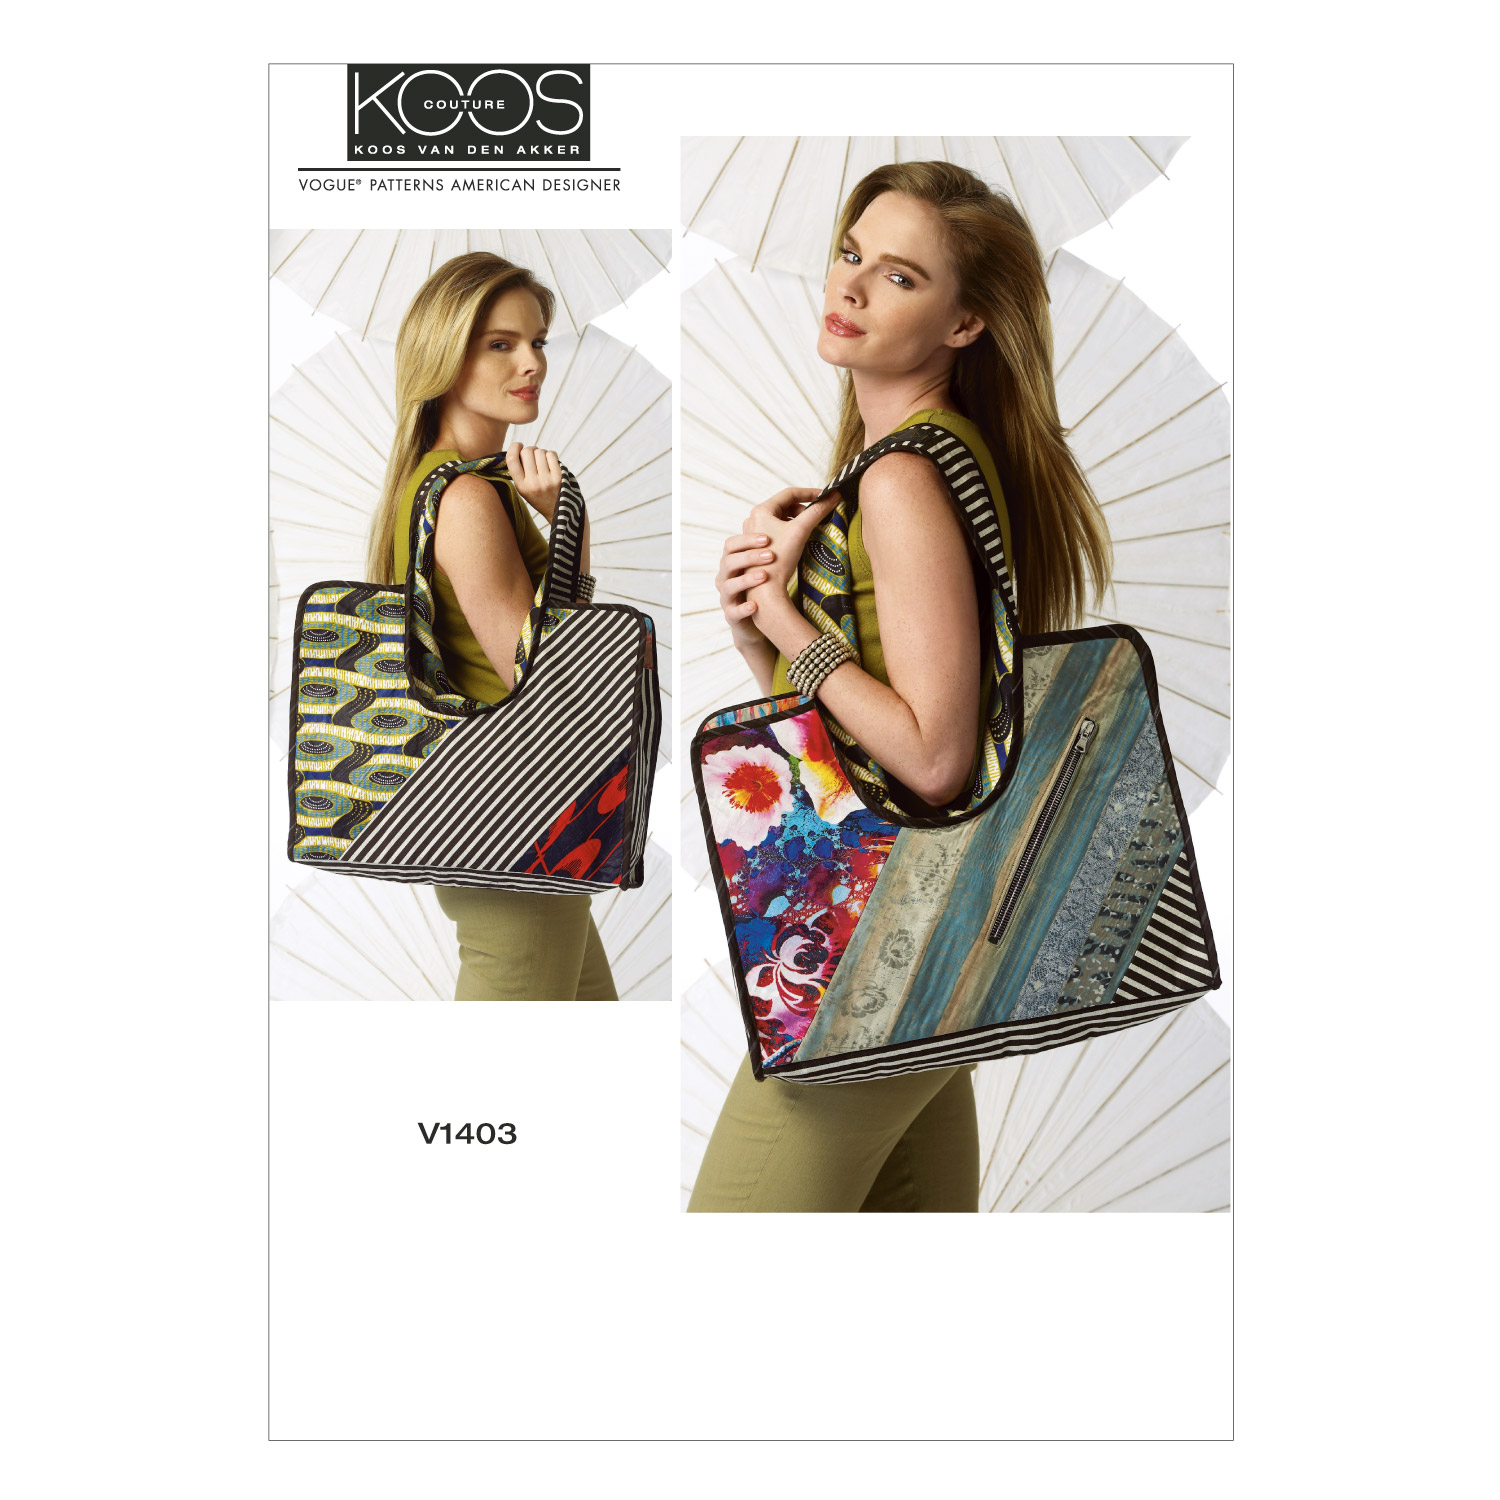 Vogue Patterns Crafts Totes & Bags-V1403